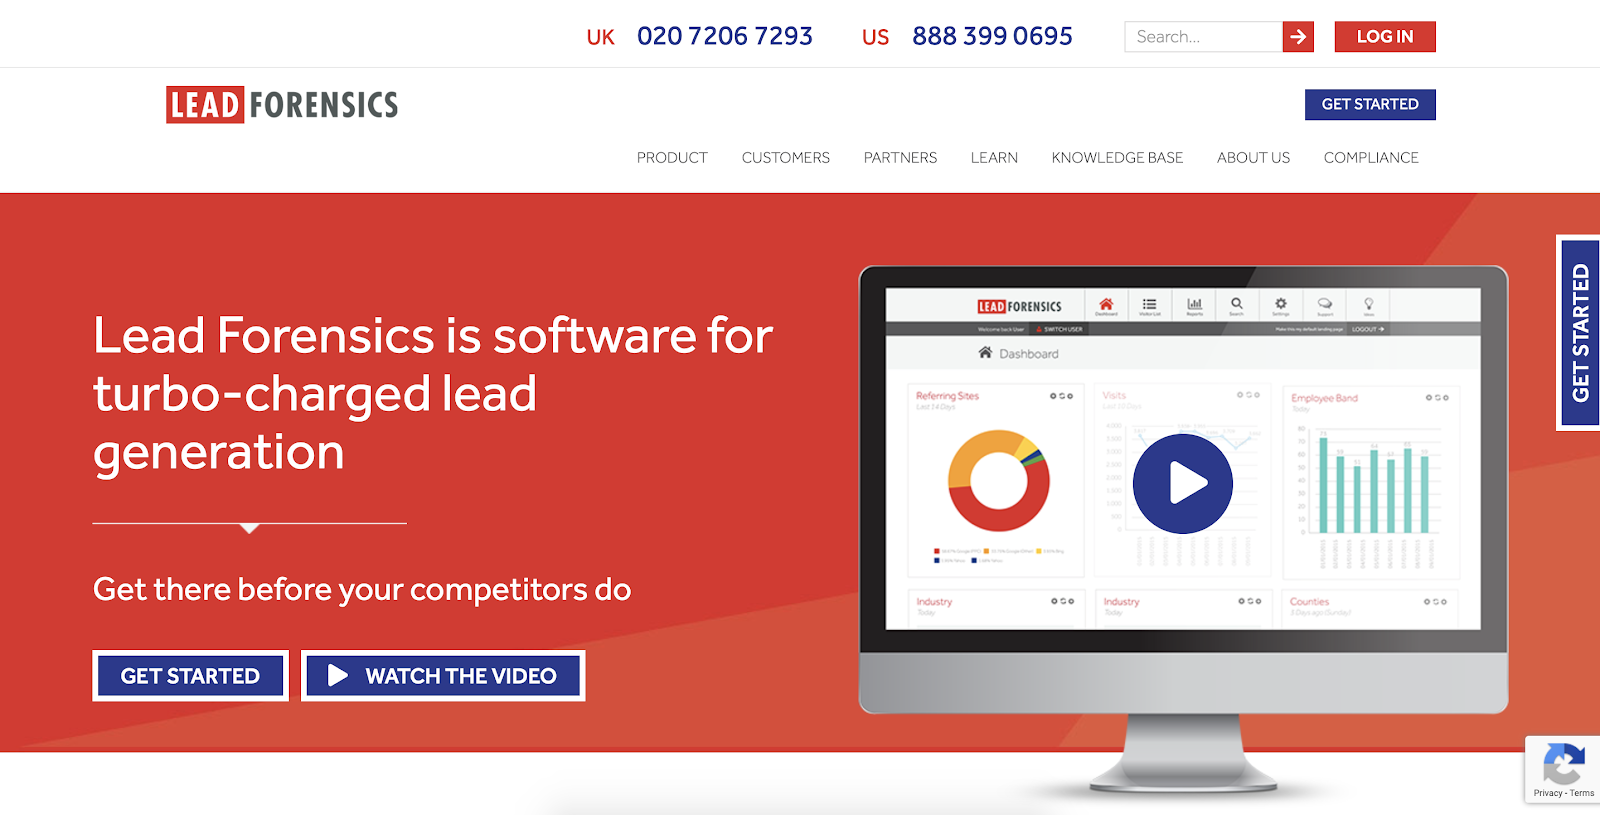 Website visitor tracking software: Lead Forensics